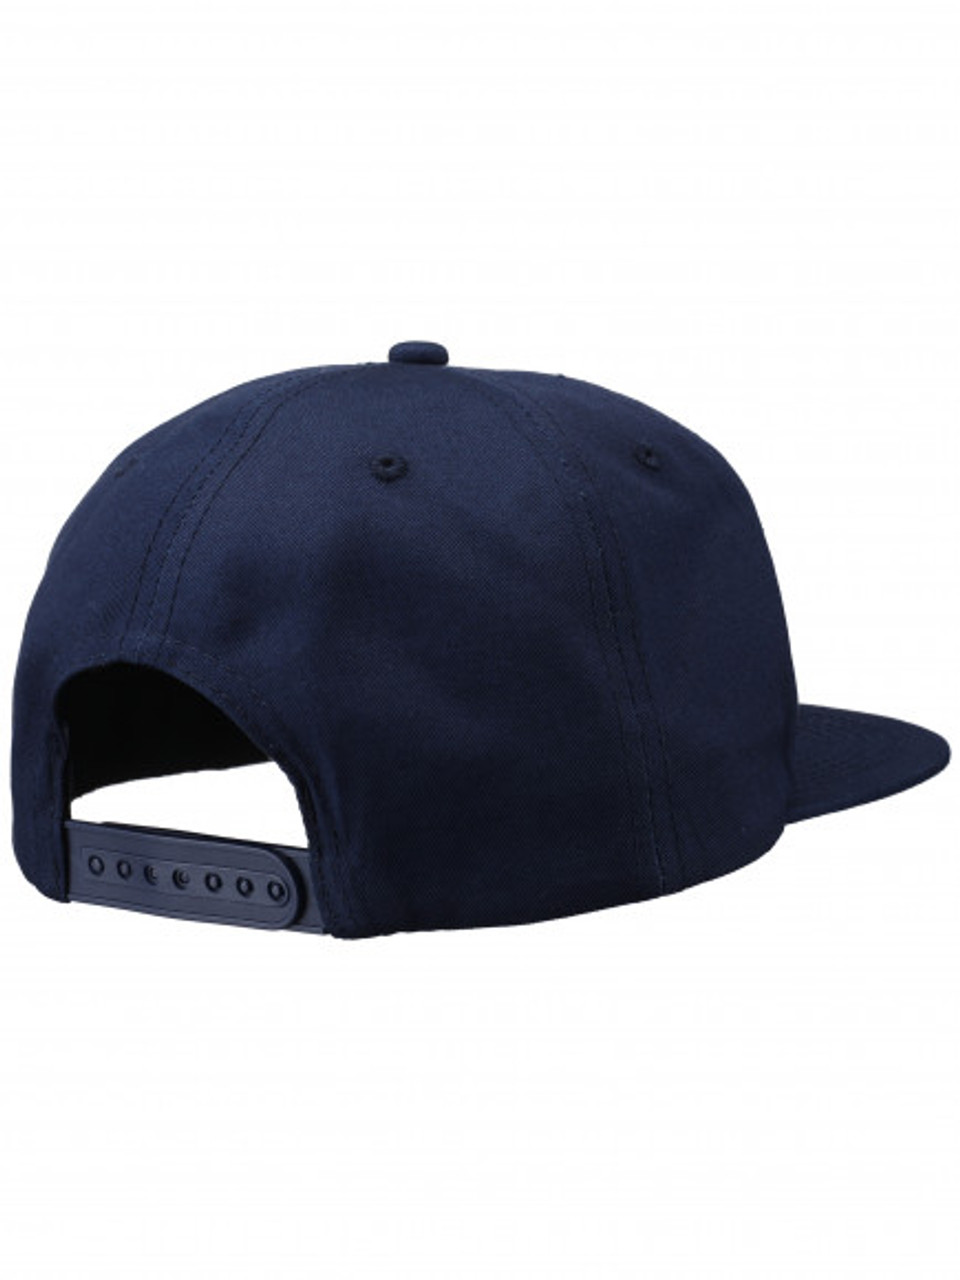 3933eb1493e80 Thrasher Outlined Hat Navy Green Snapback